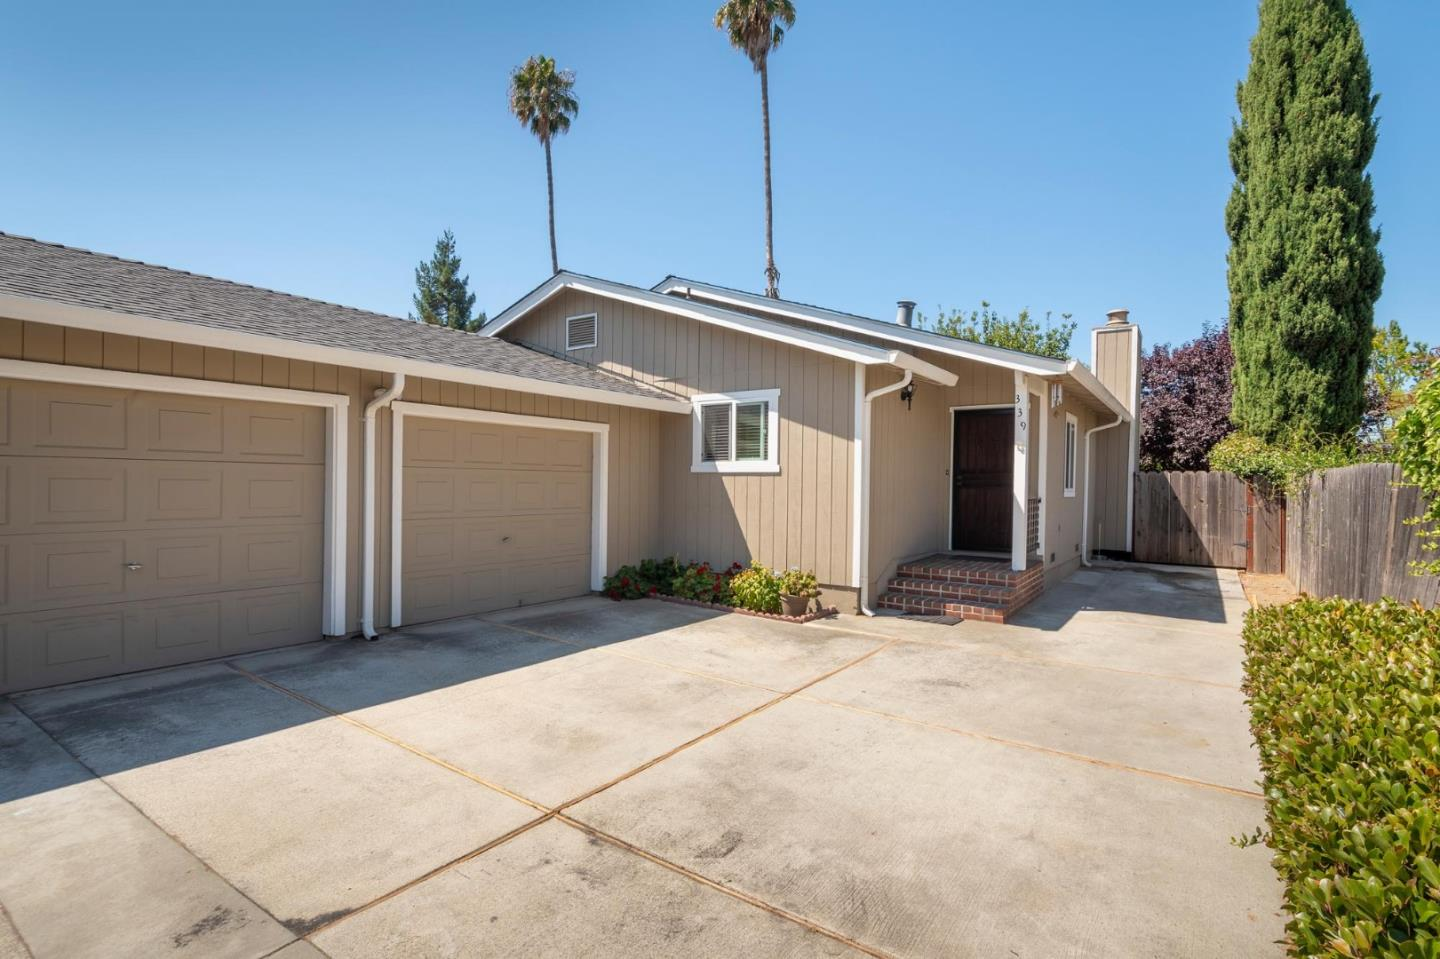 337-339 Morse Avenue Sunnyvale, CA 94085 - MLS #: ML81722378